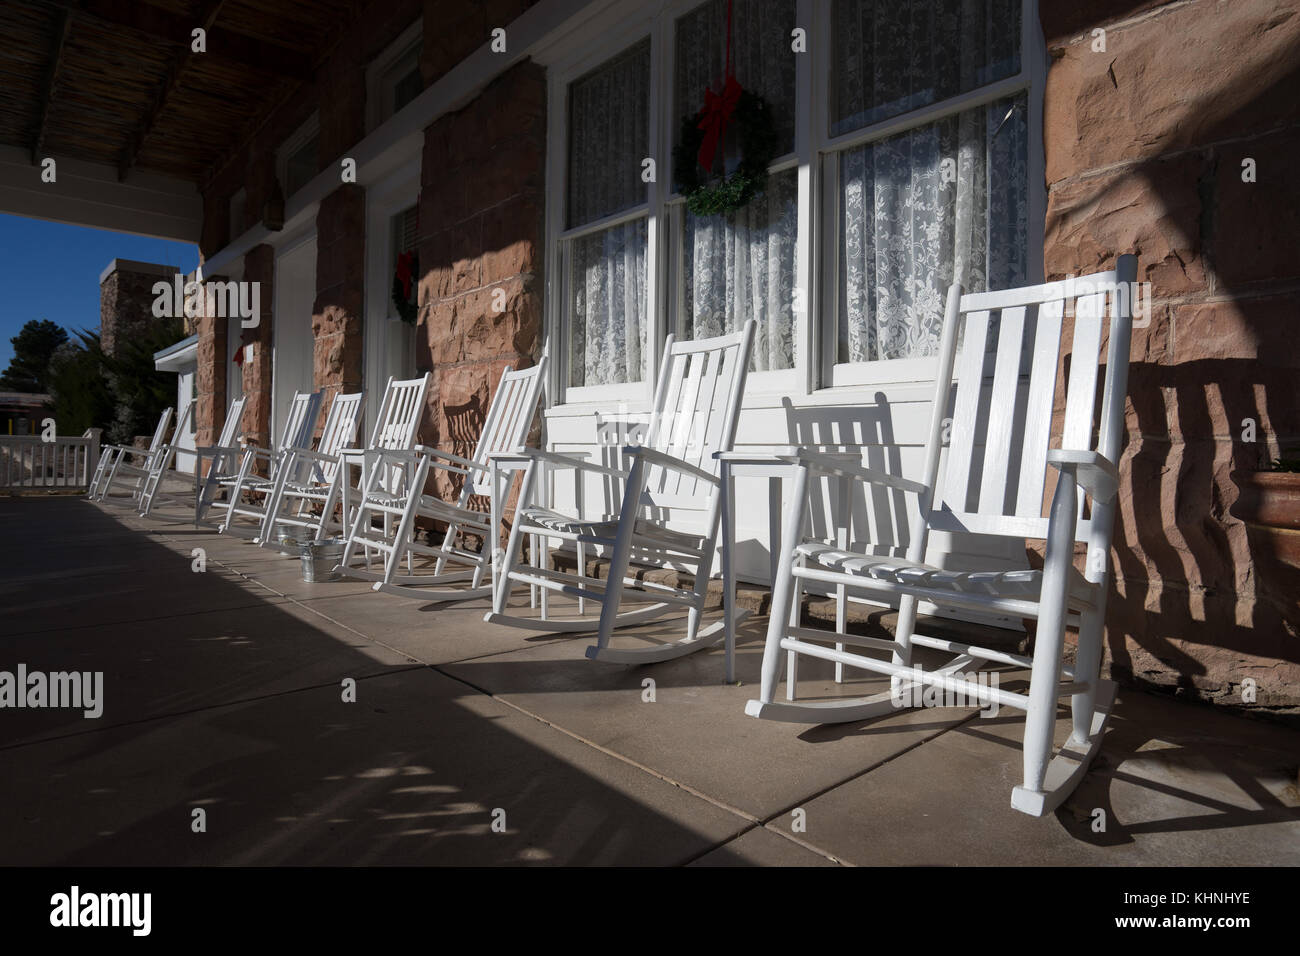 Astounding White Rocking Chairs On Building Porch In Texas Stock Photo Unemploymentrelief Wooden Chair Designs For Living Room Unemploymentrelieforg